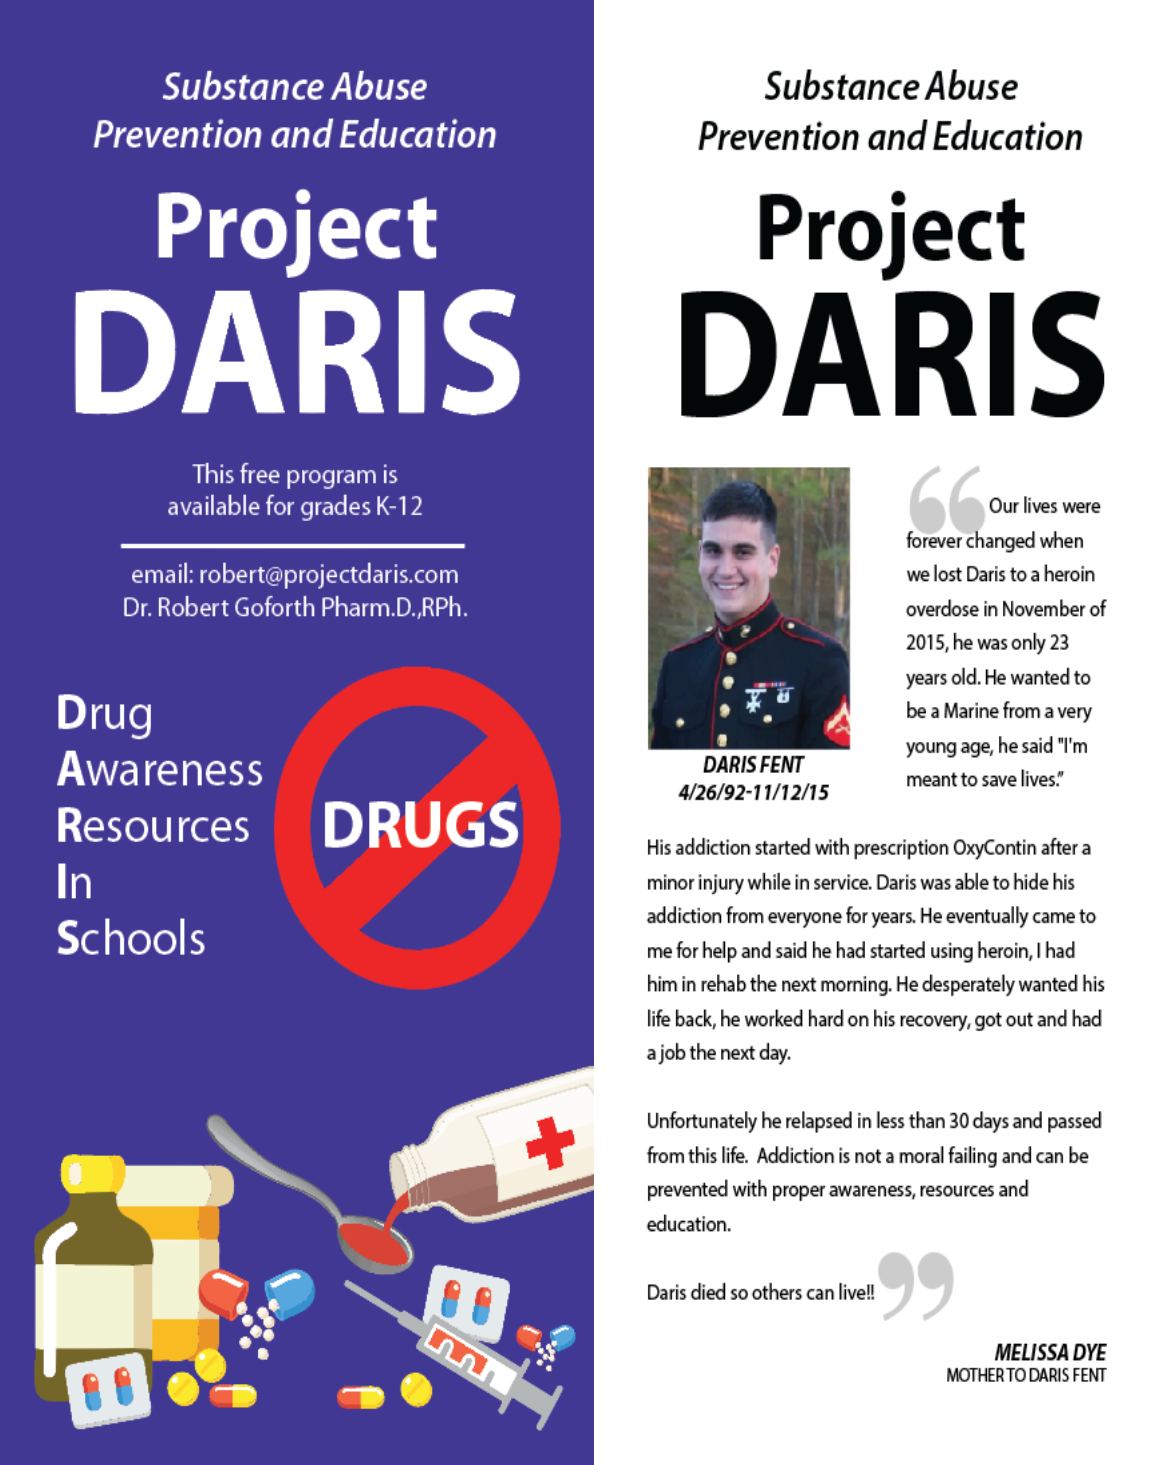 PROJECT DARIS